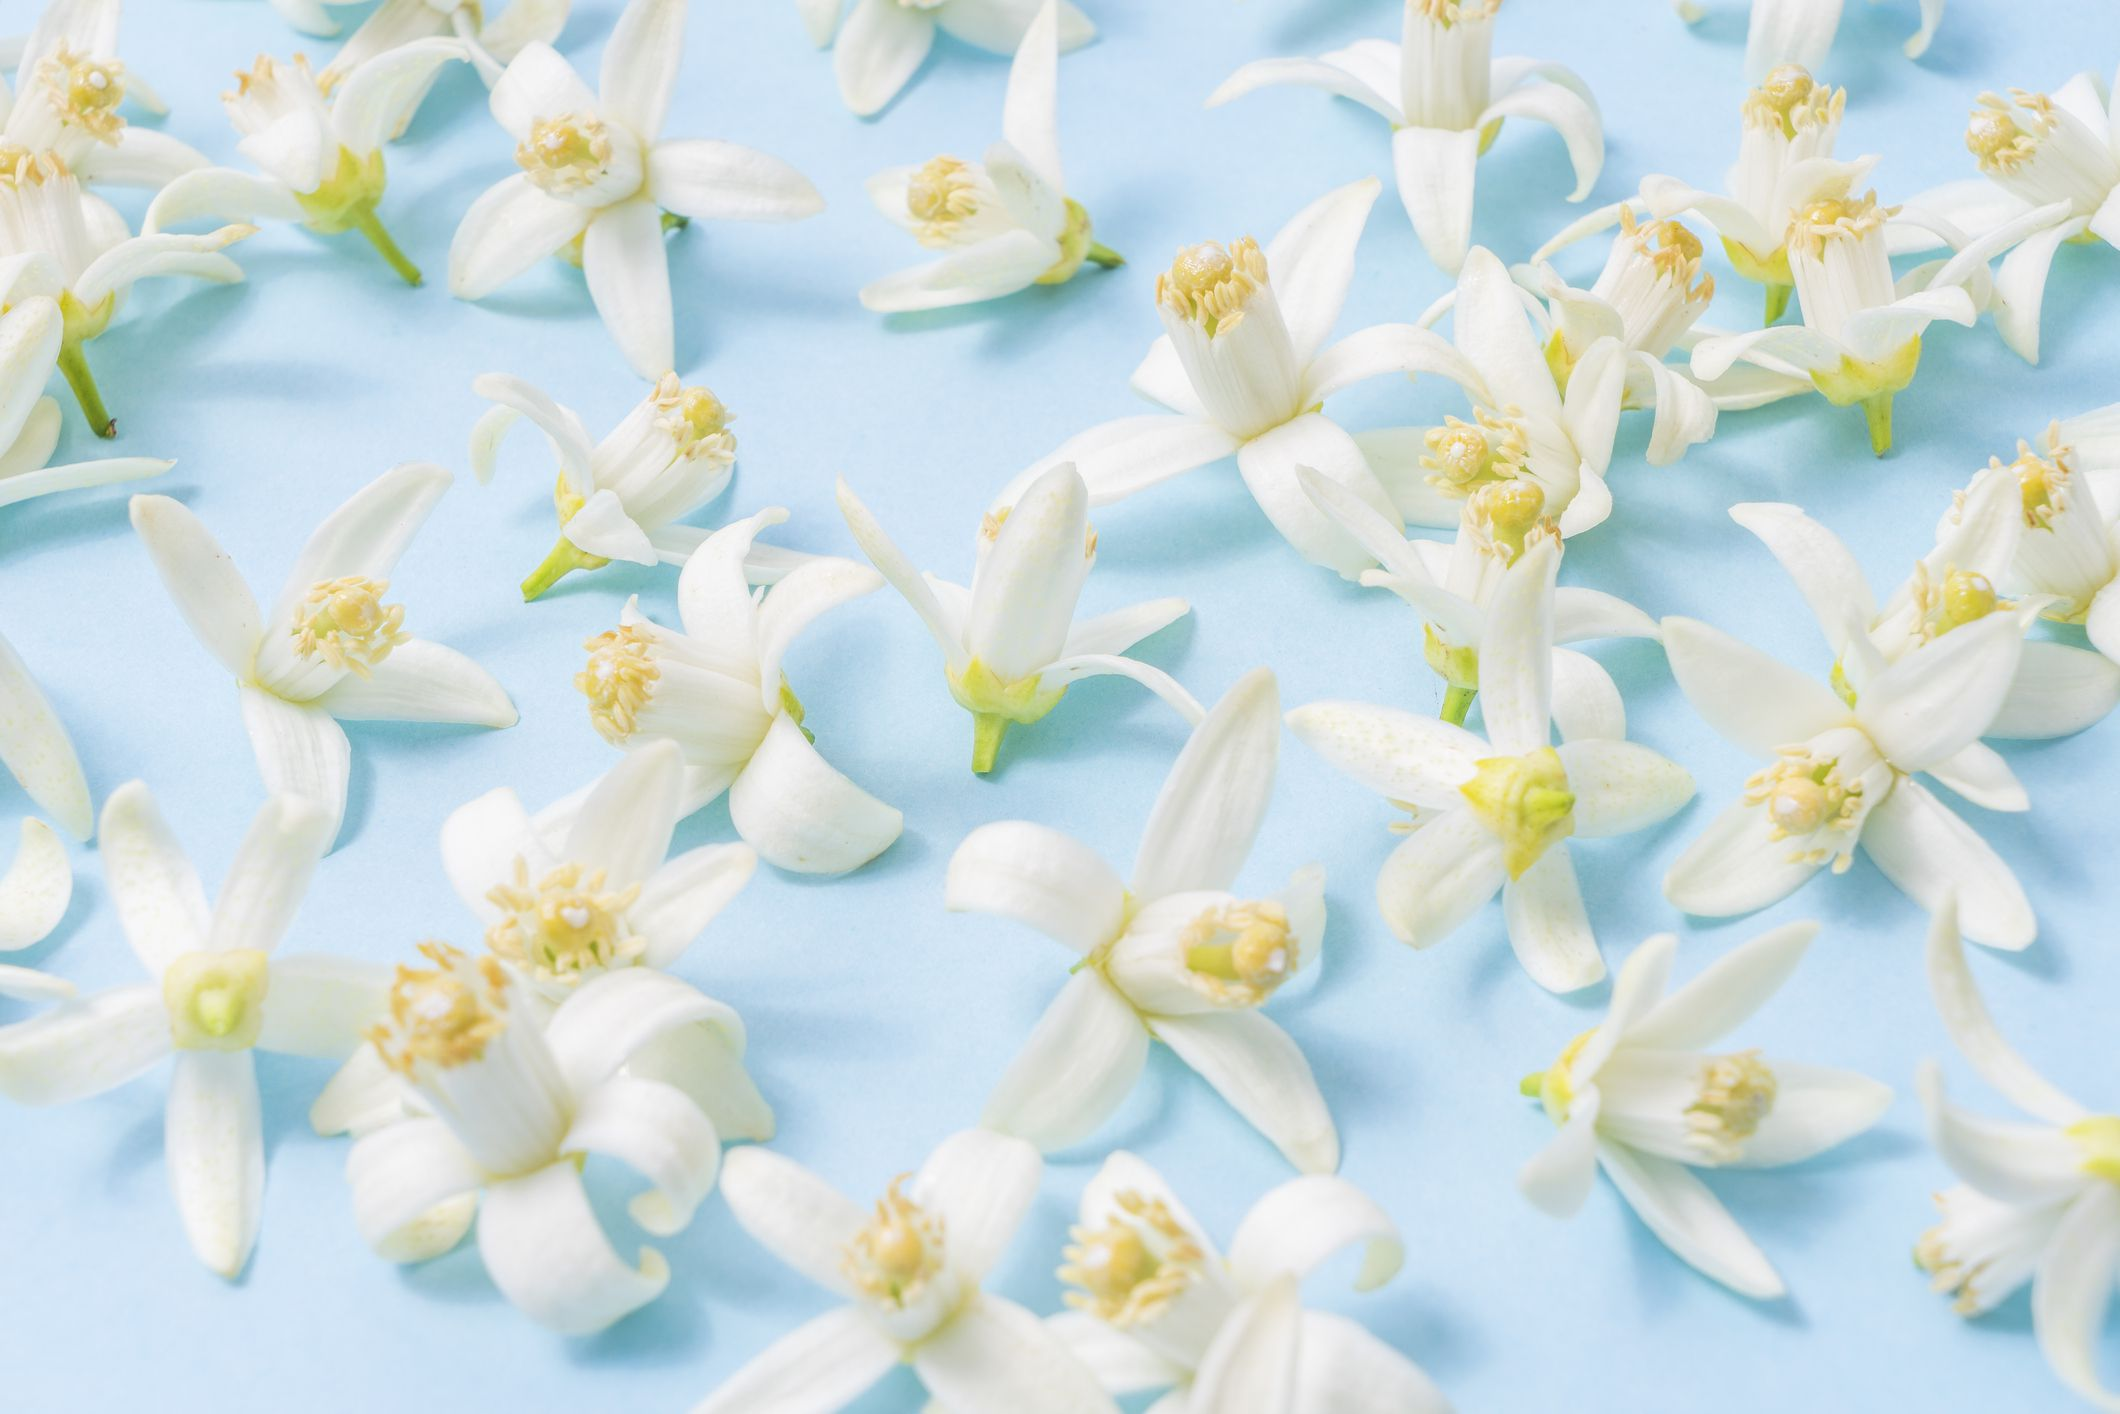 Neroli Essential Oil The Benefits And Uses